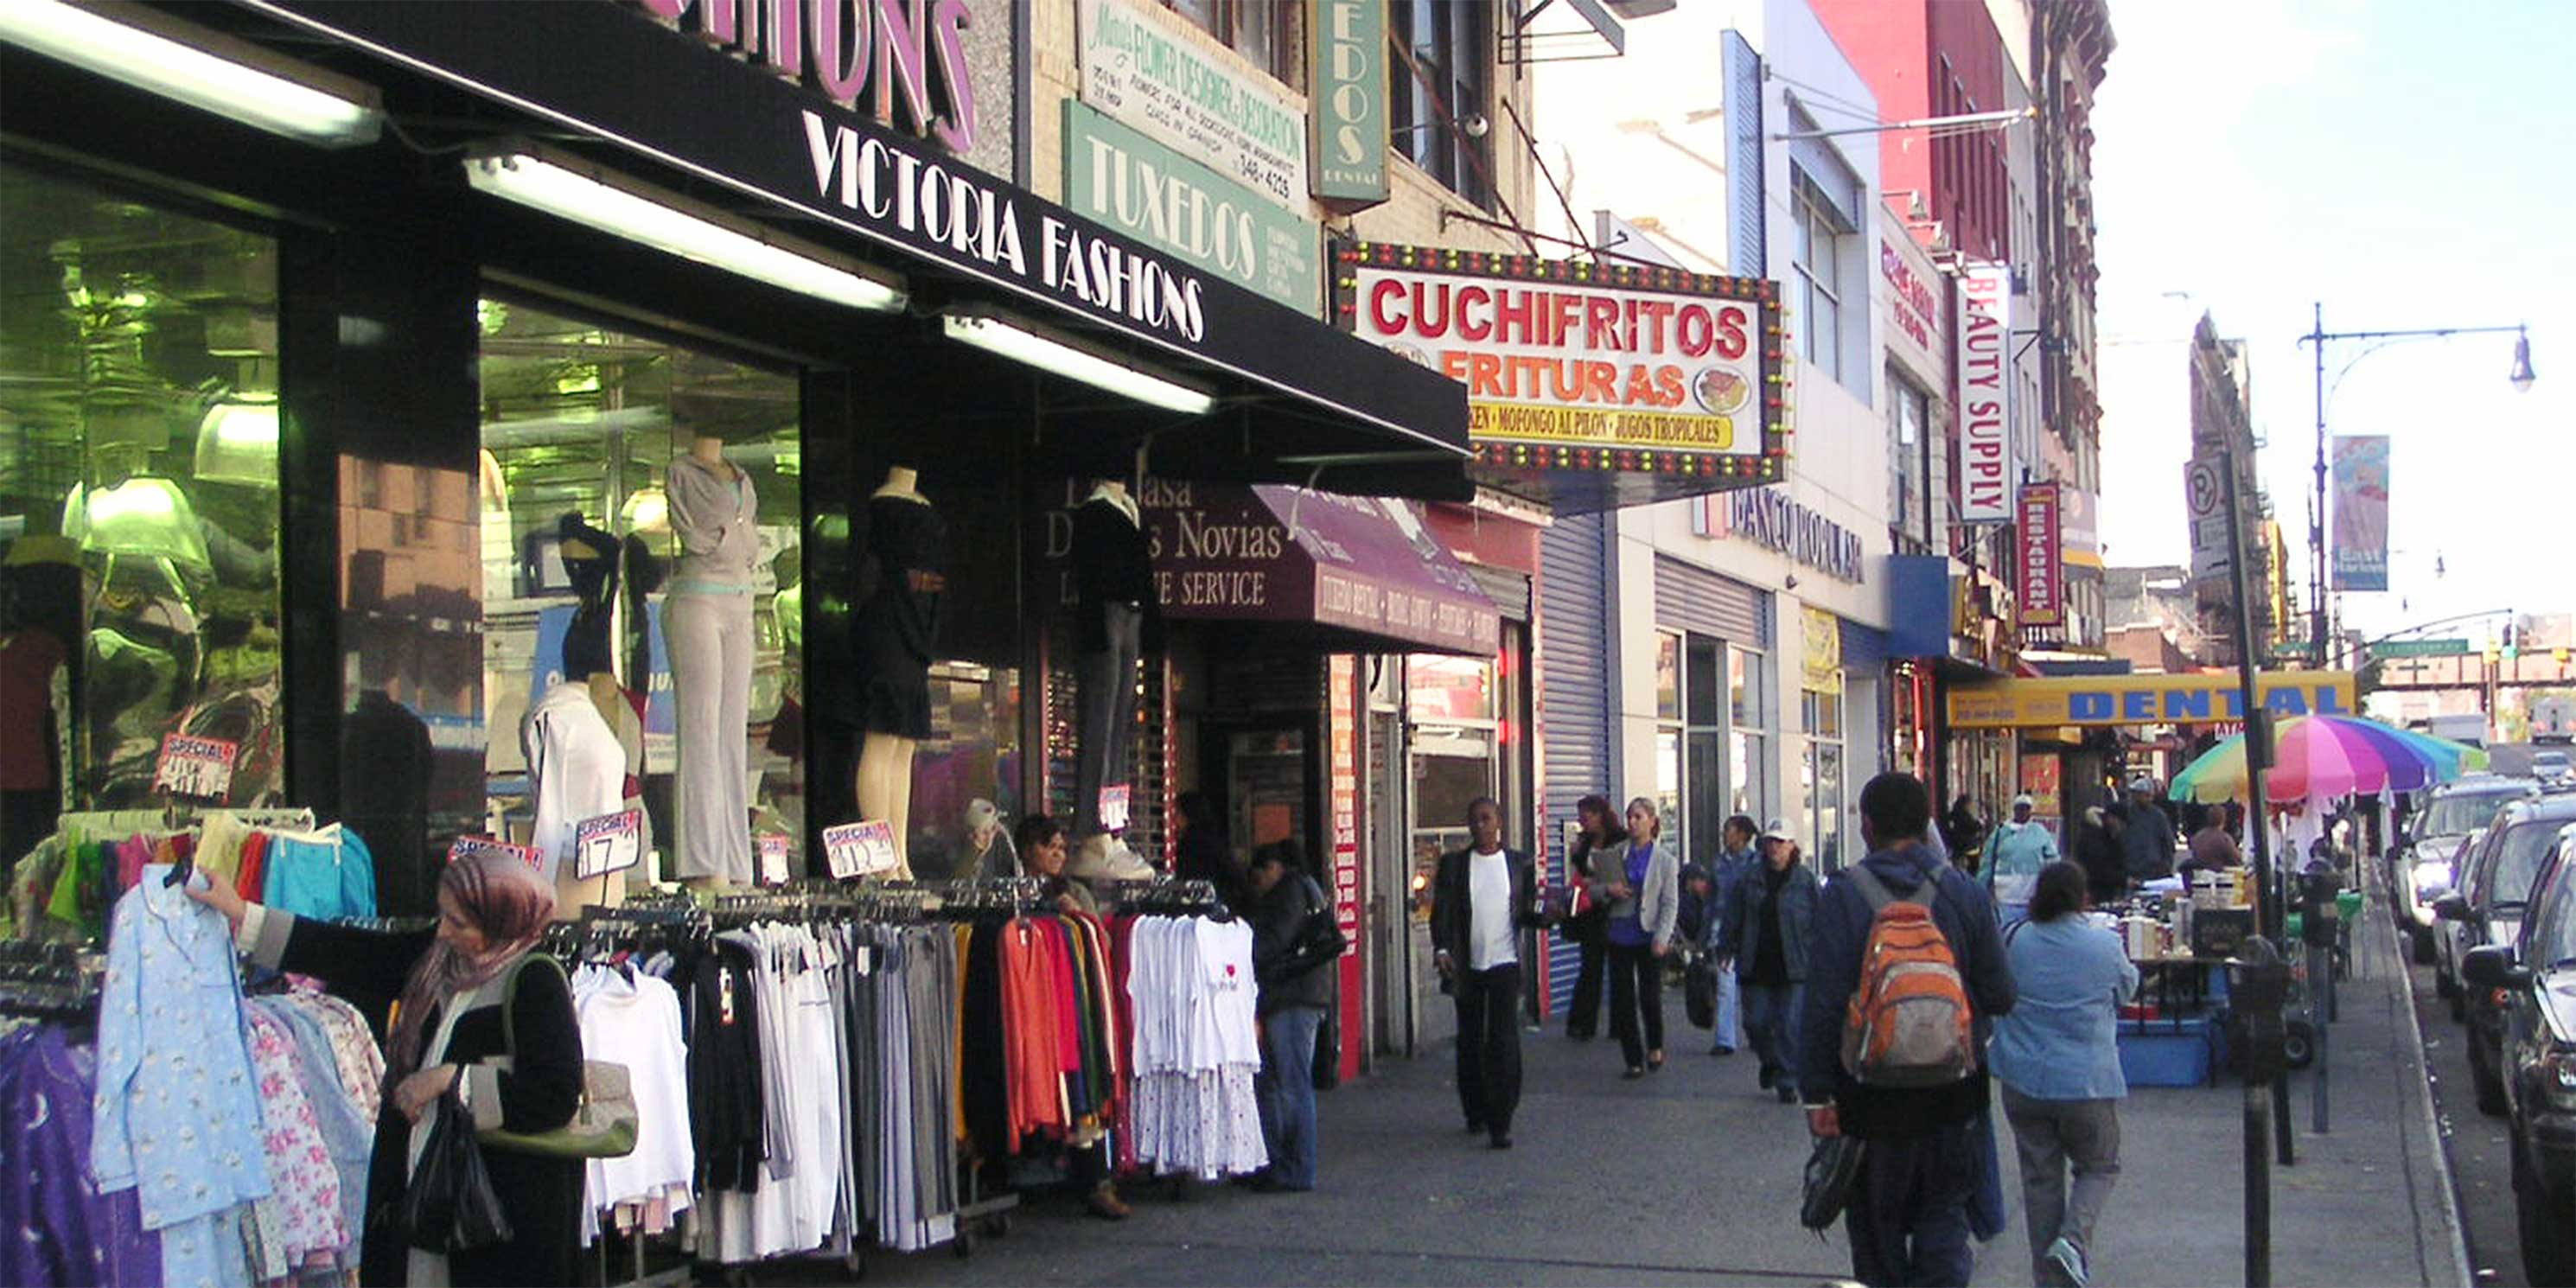 exterior of clothing store in East Harlem